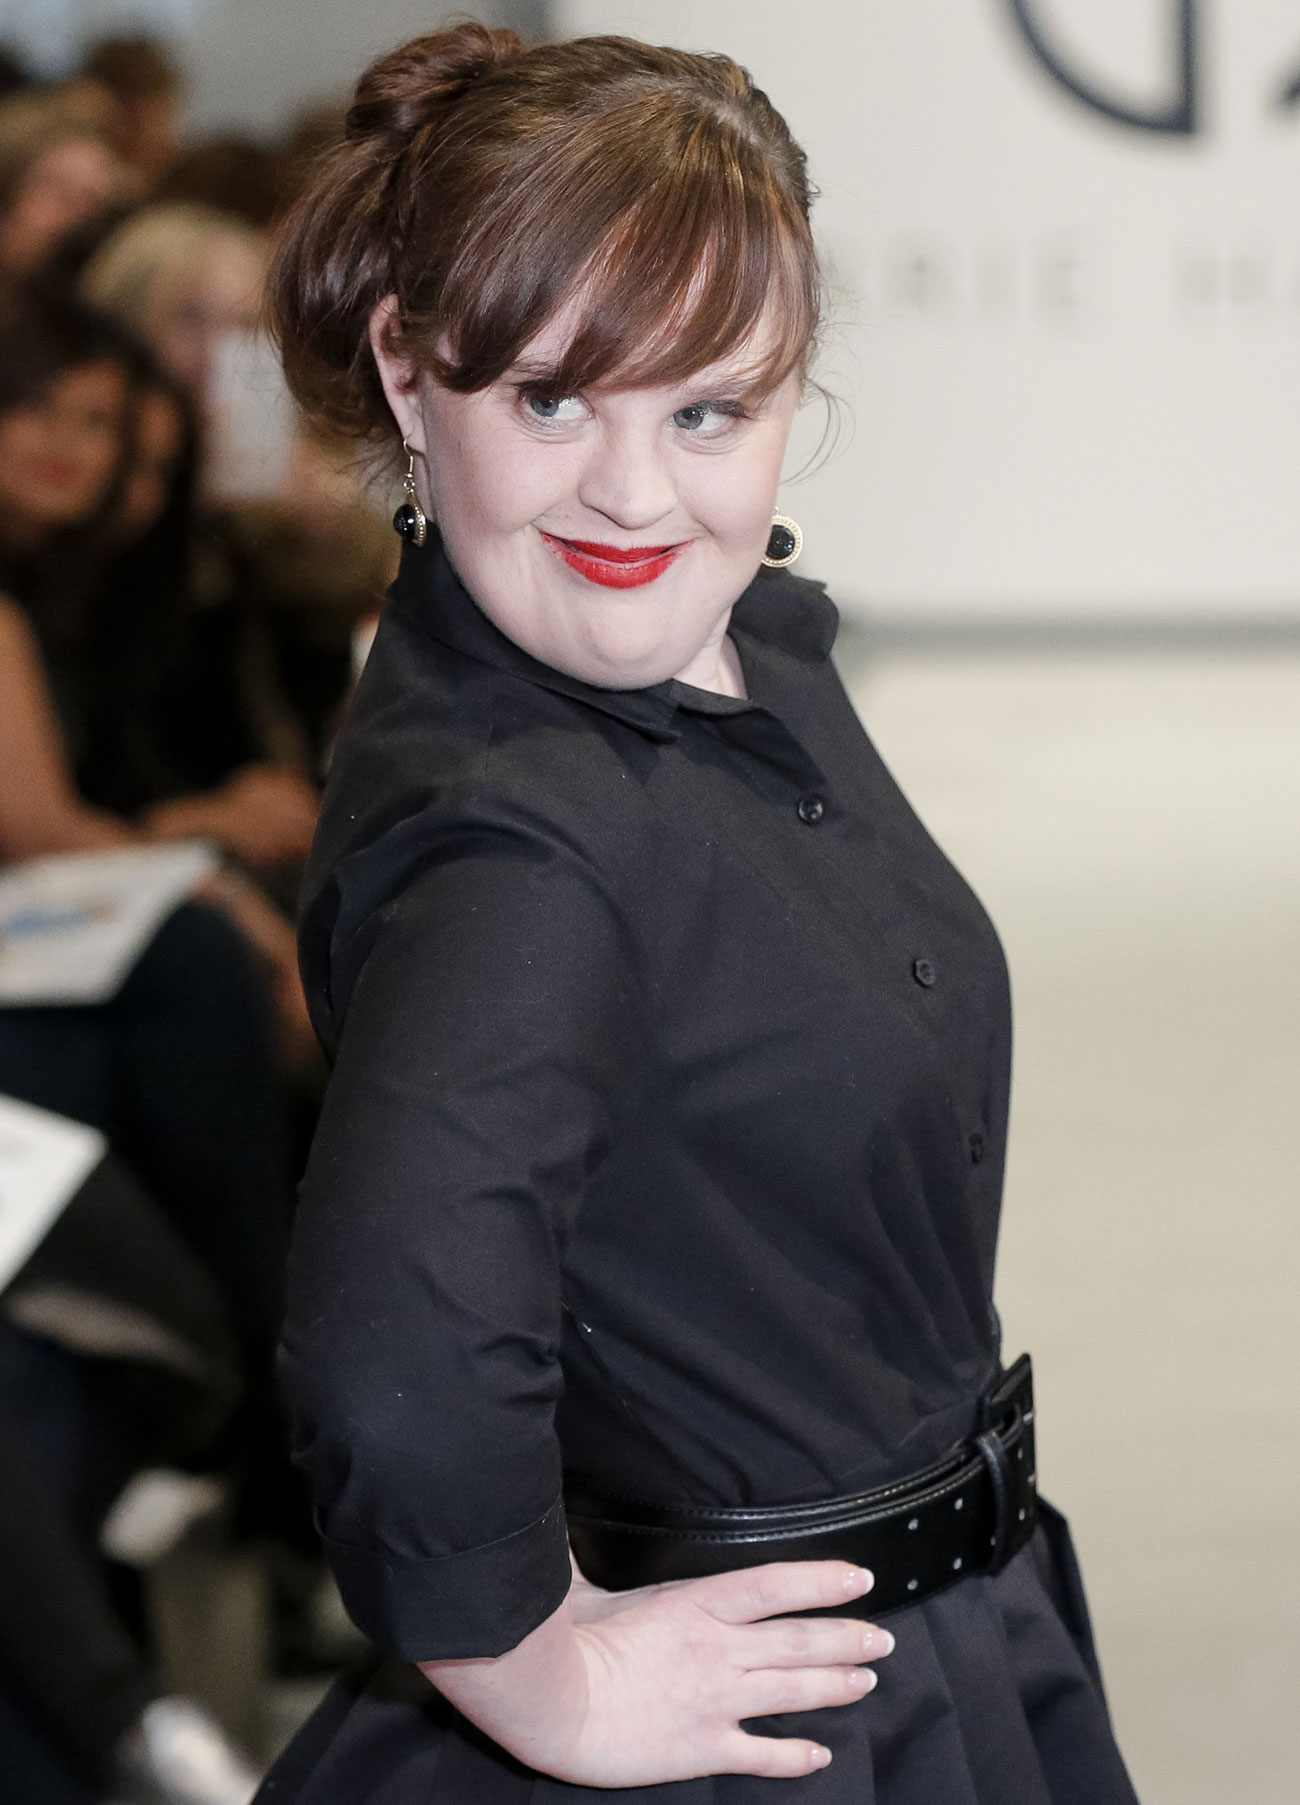 jamie brewer biographyjamie brewer american horror story, jamie brewer wikipedia, jamie brewer biography, jamie brewer личная жизнь, jamie brewer instagram, jamie brewer биография, jamie brewer википедия, jamie brewer interview, jamie brewer model, jamie brewer down, jamie brewer iq, jamie brewer wiki, jamie brewer runway, jamie brewer ahs, jamie brewer twitter, jamie brewer boyfriend, jamie brewer youtube, jamie brewer actress, jamie brewer season 4, jamie brewer facebook